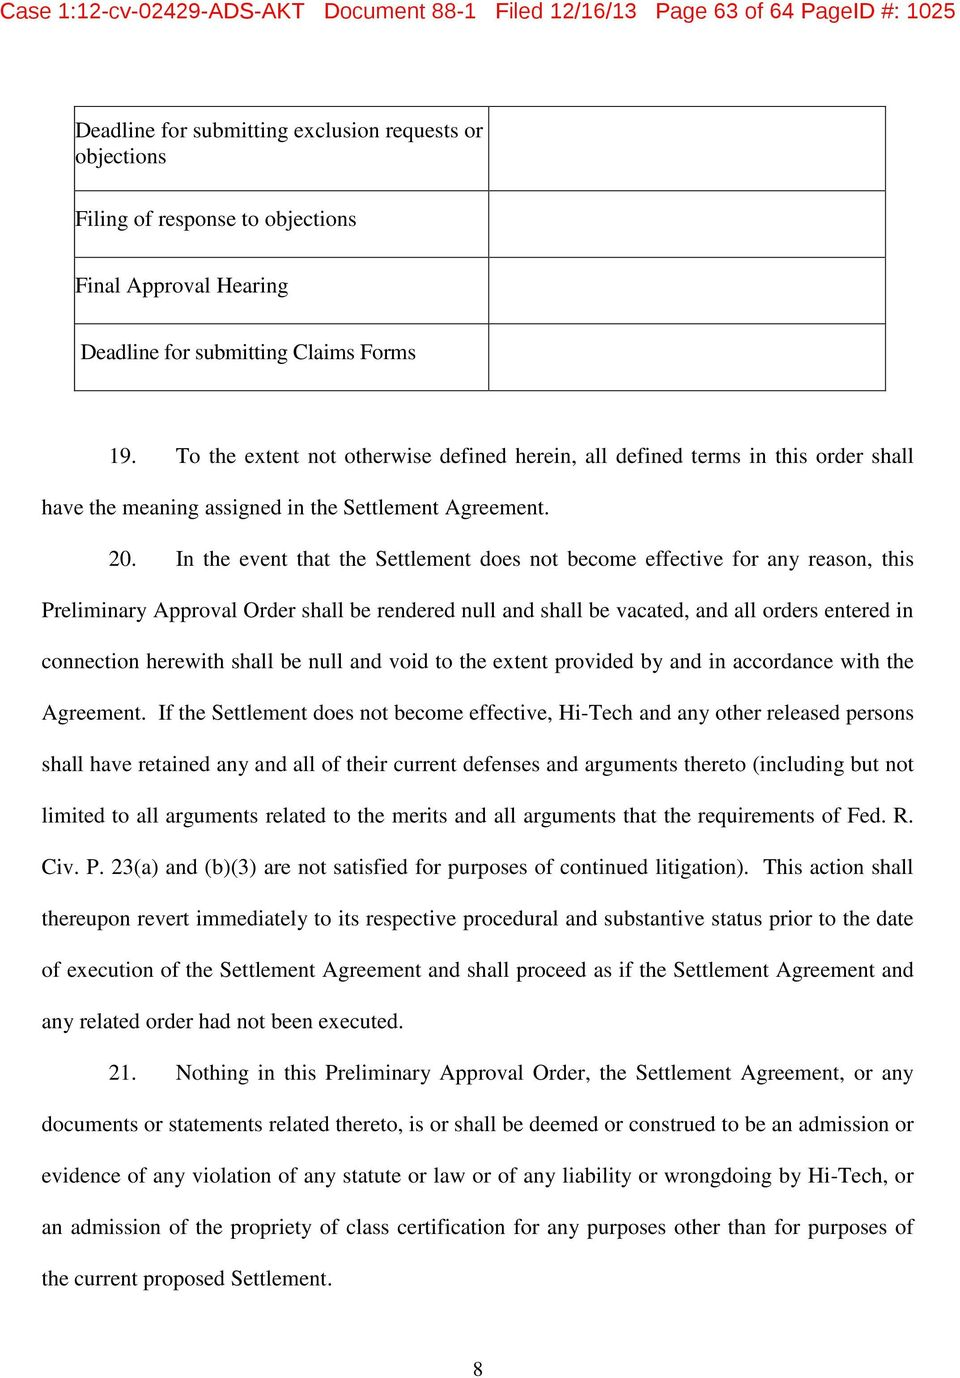 In the event that the Settlement does not become effective for any reason, this Preliminary Approval Order shall be rendered null and shall be vacated, and all orders entered in connection herewith